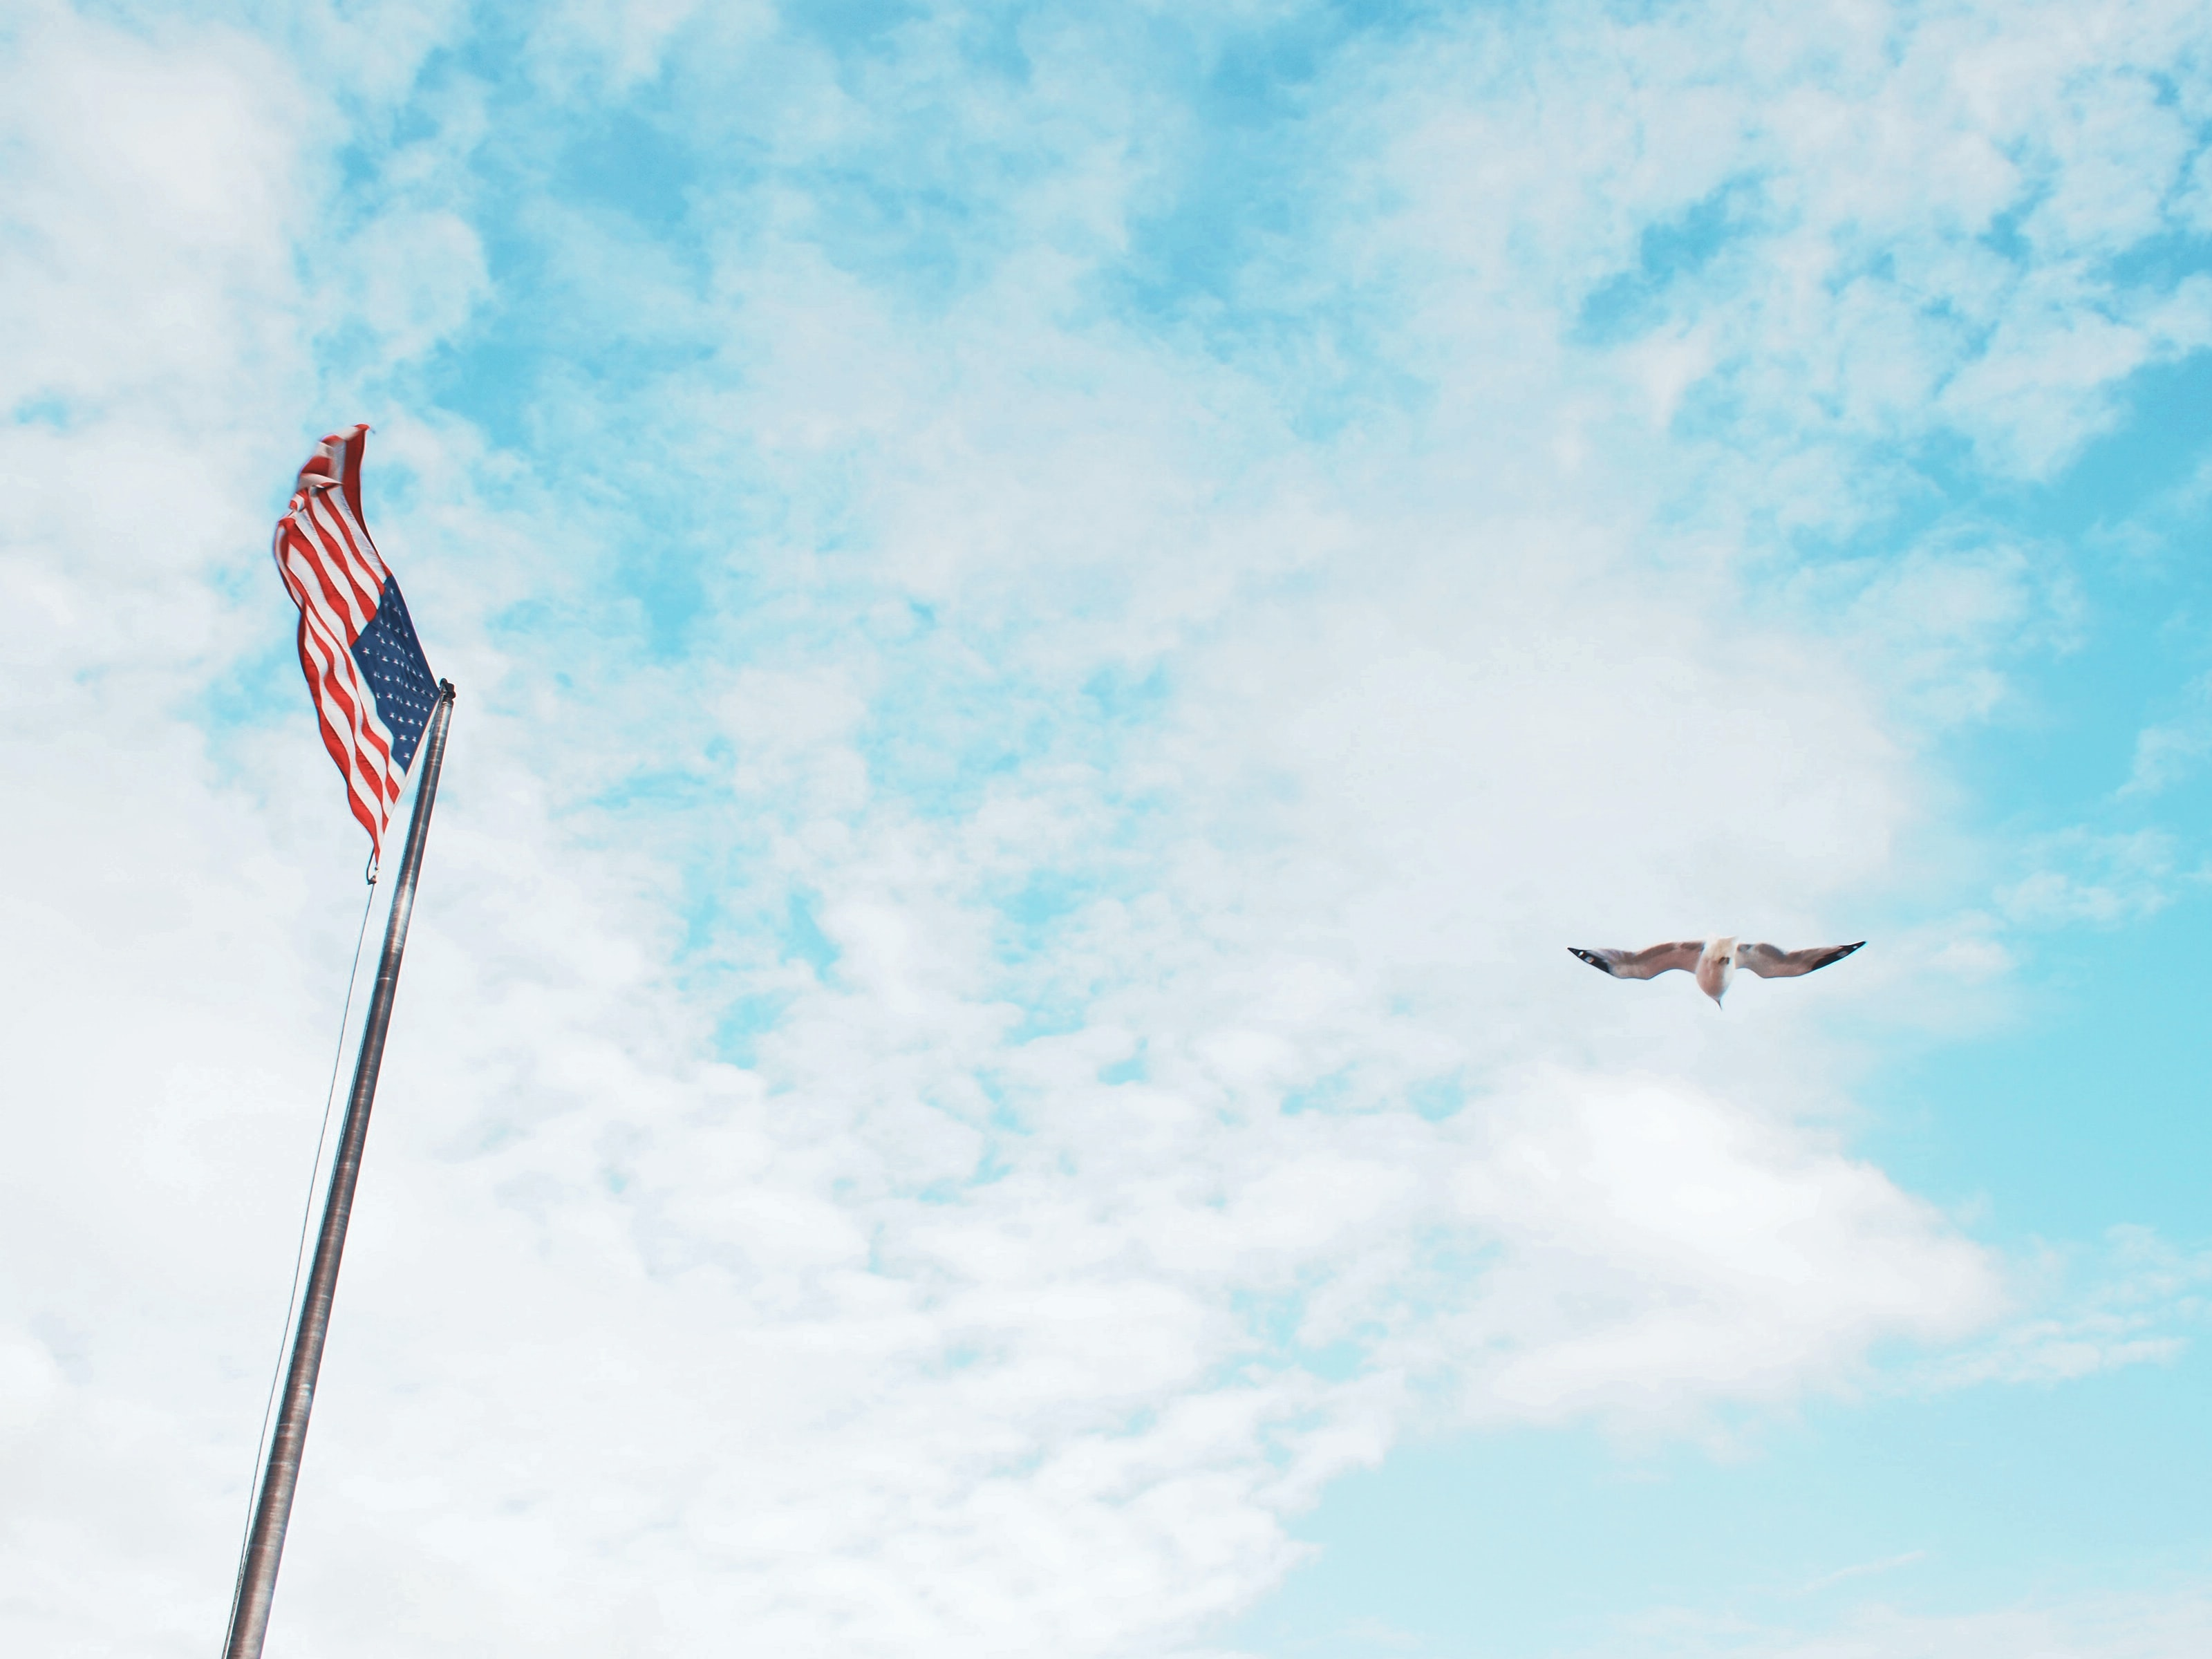 bird flying near American flag under white clouds during daytime